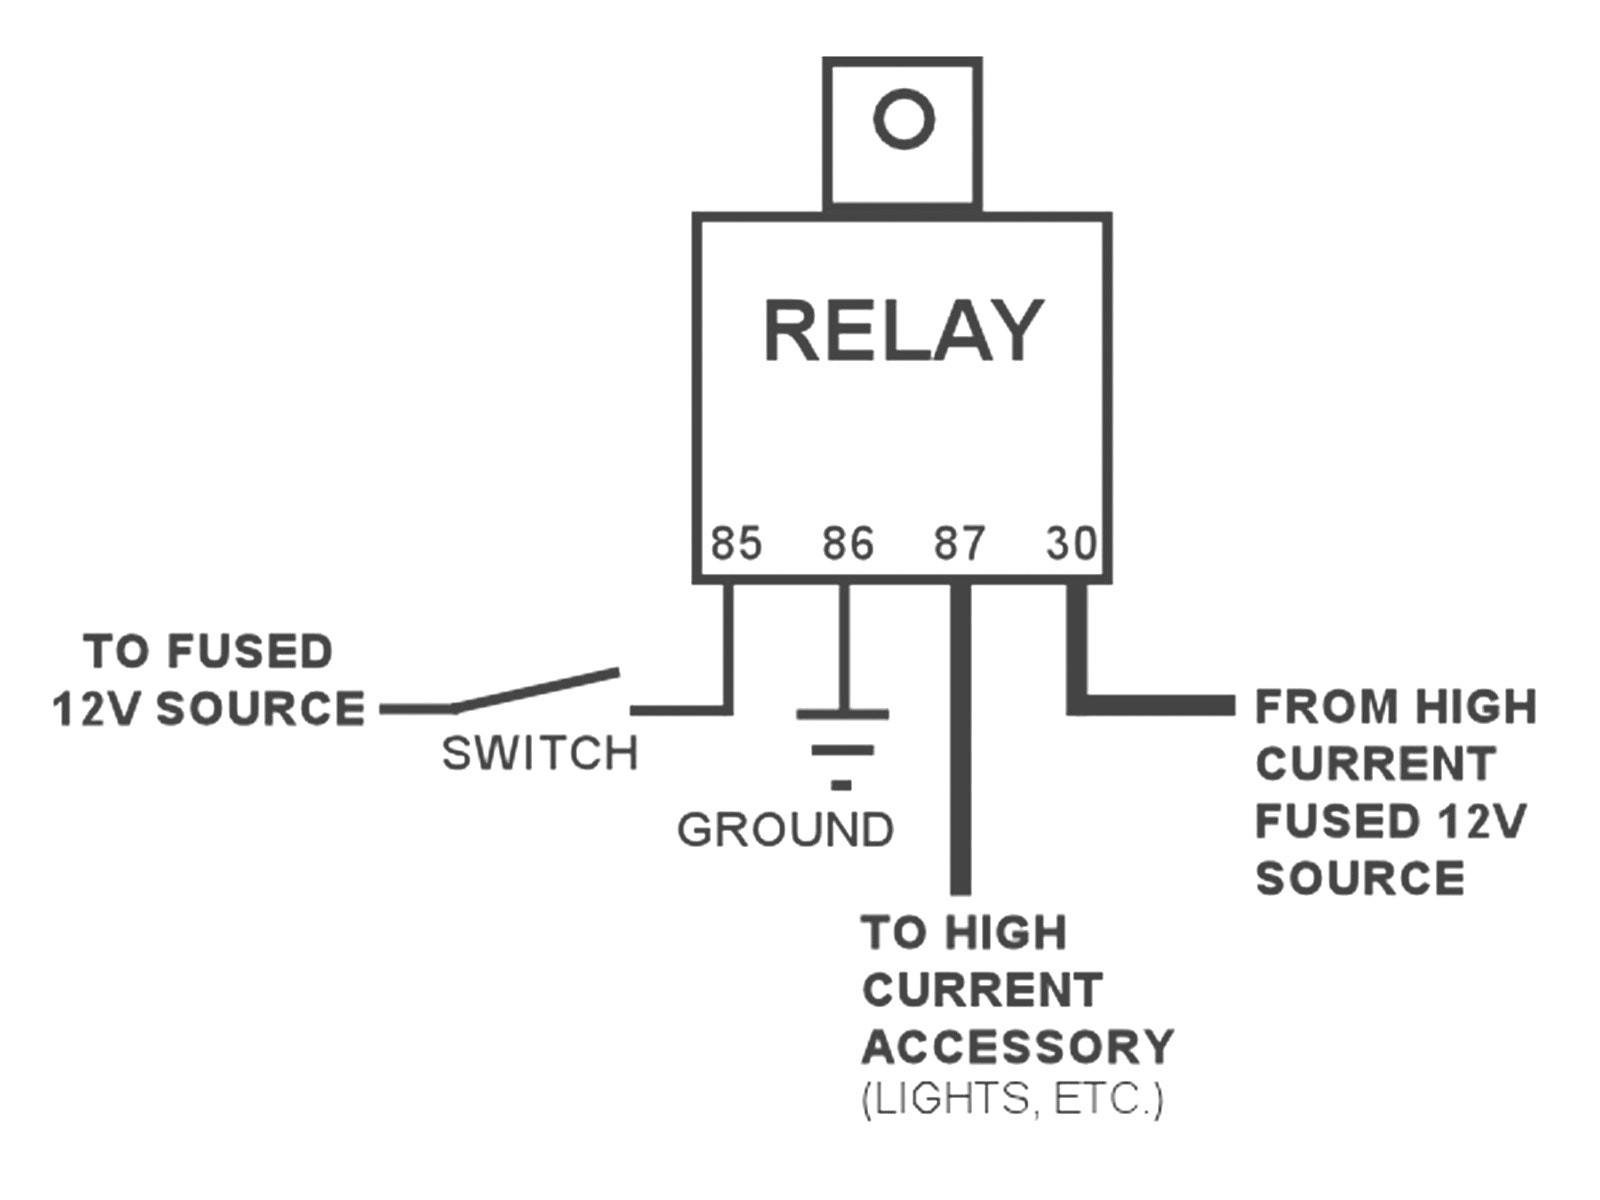 12 Volt 5 Pin Relay Wiring Diagram - Pickenscountymedicalcenter - 12V Relay Wiring Diagram 5 Pin